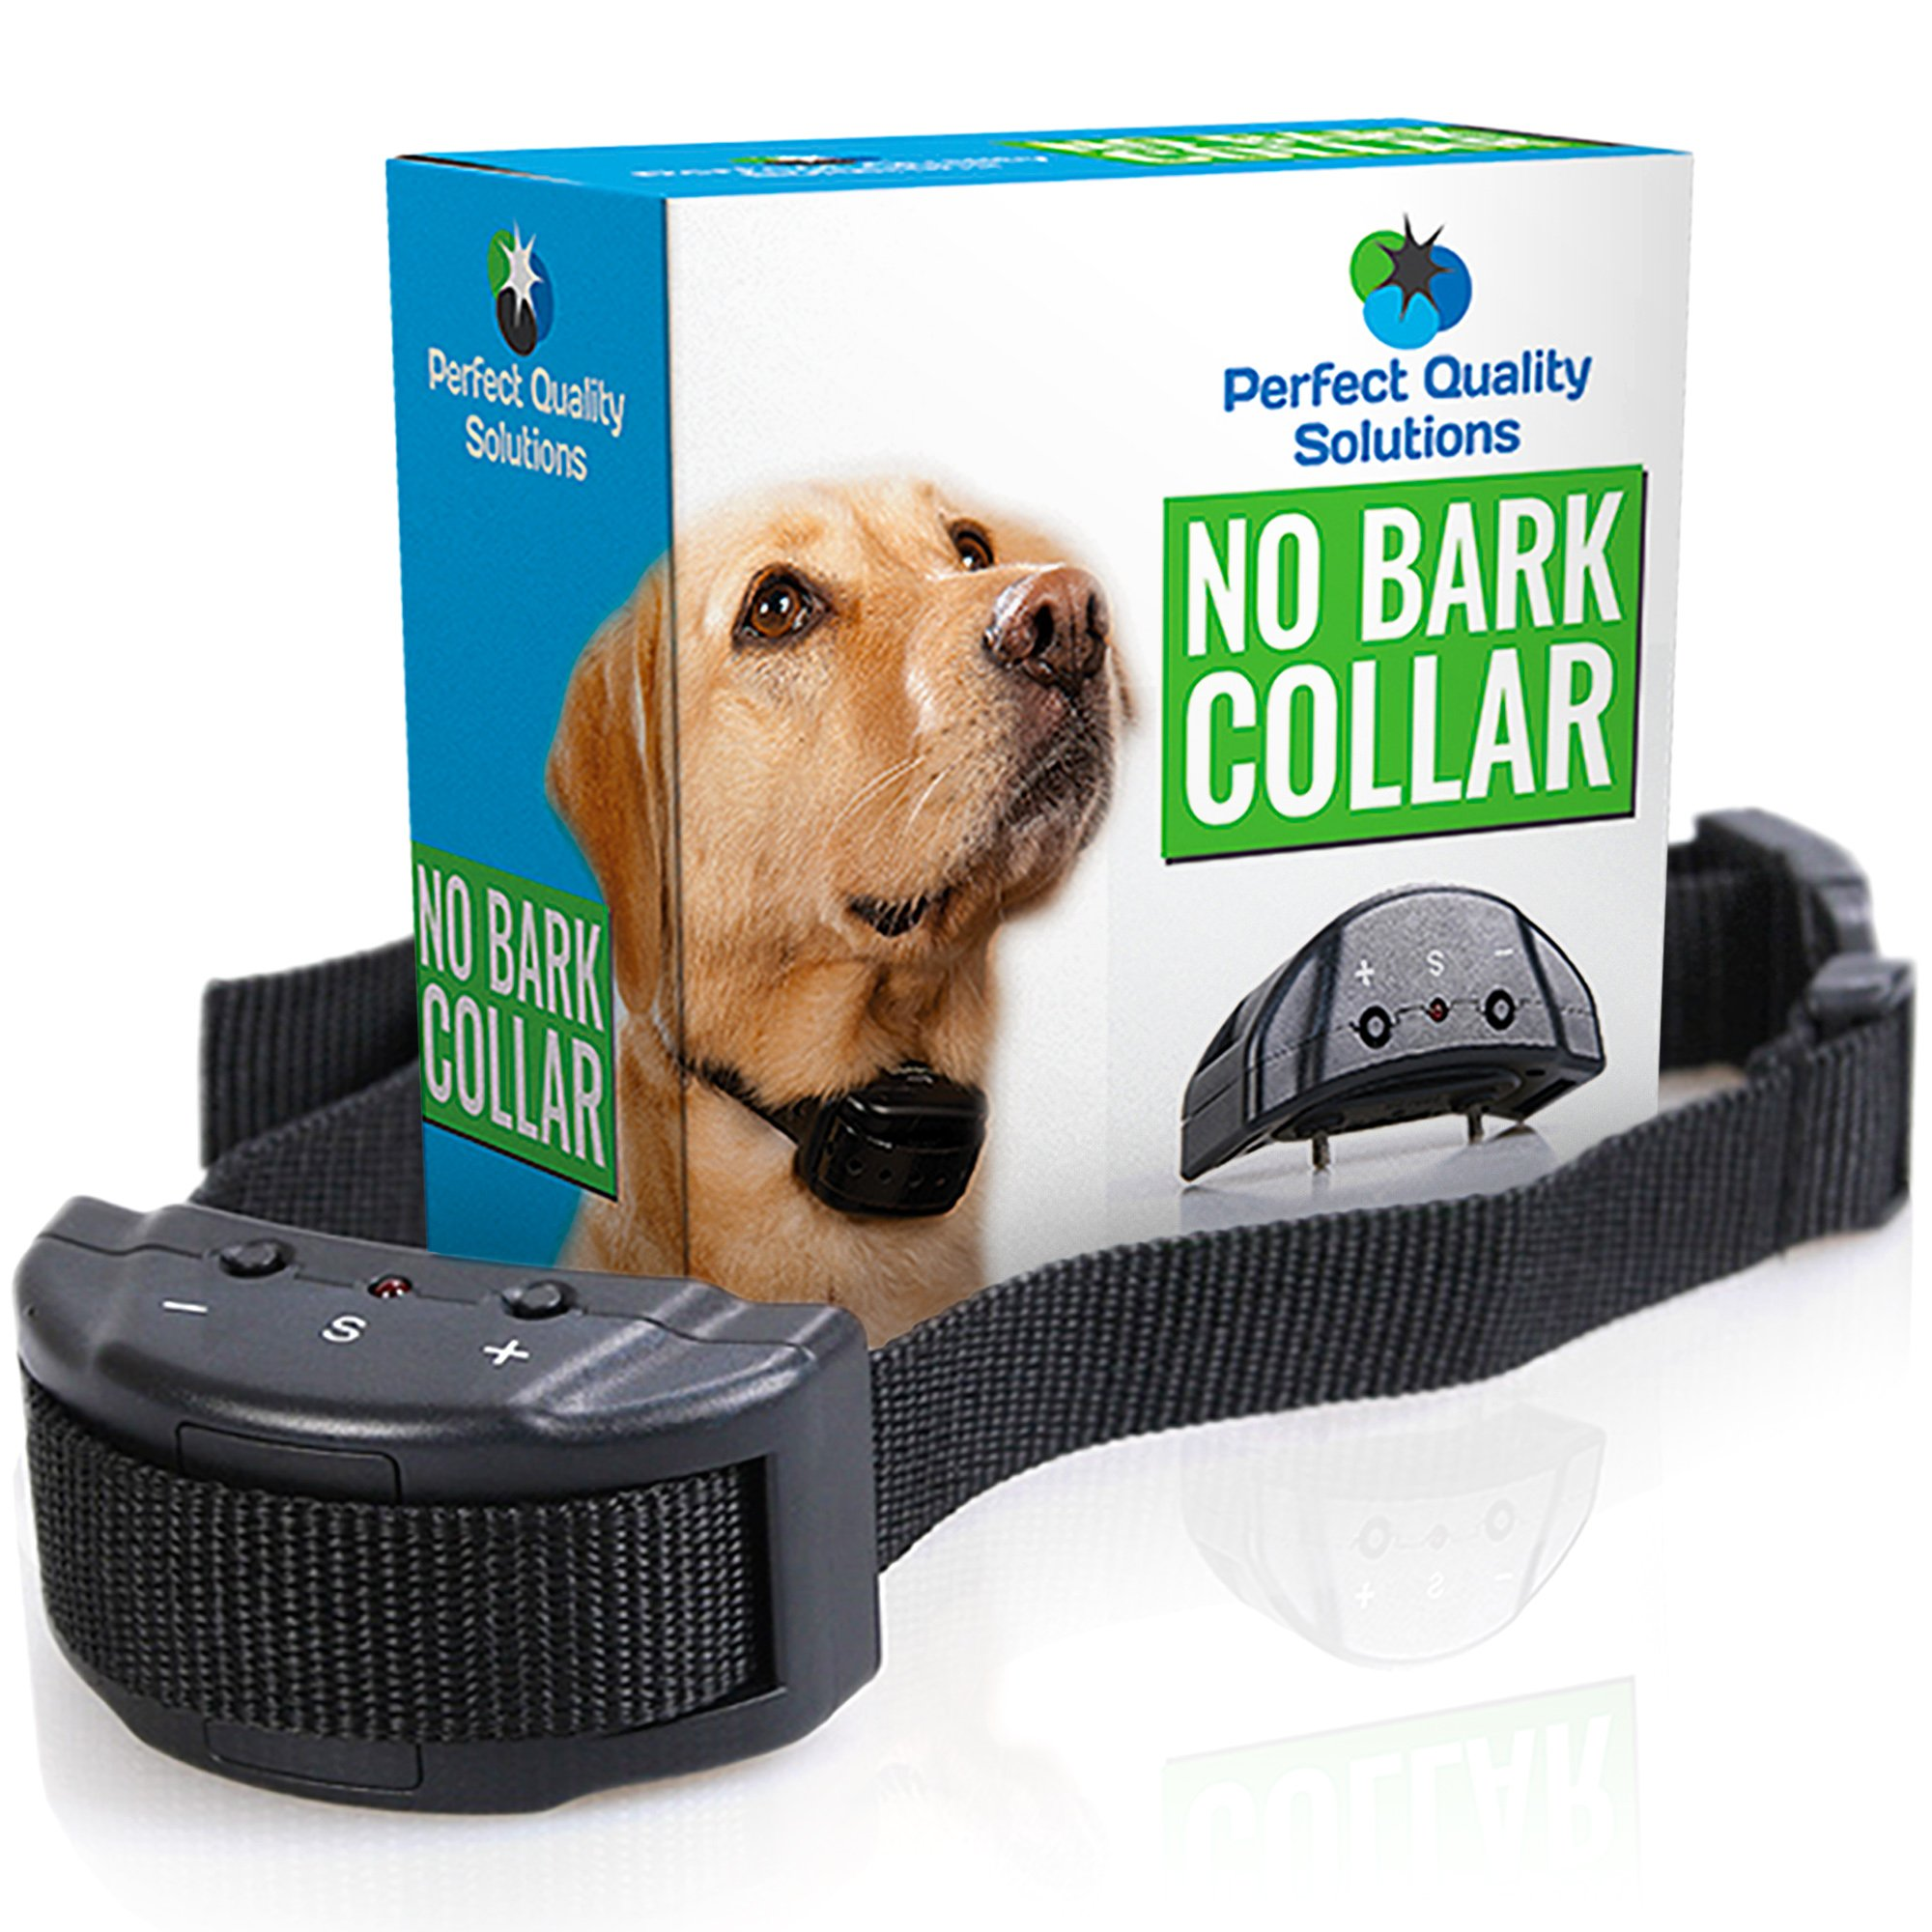 Advance No Bark Collar By Perfect Quality Solution-No Harm Shock Dog Control